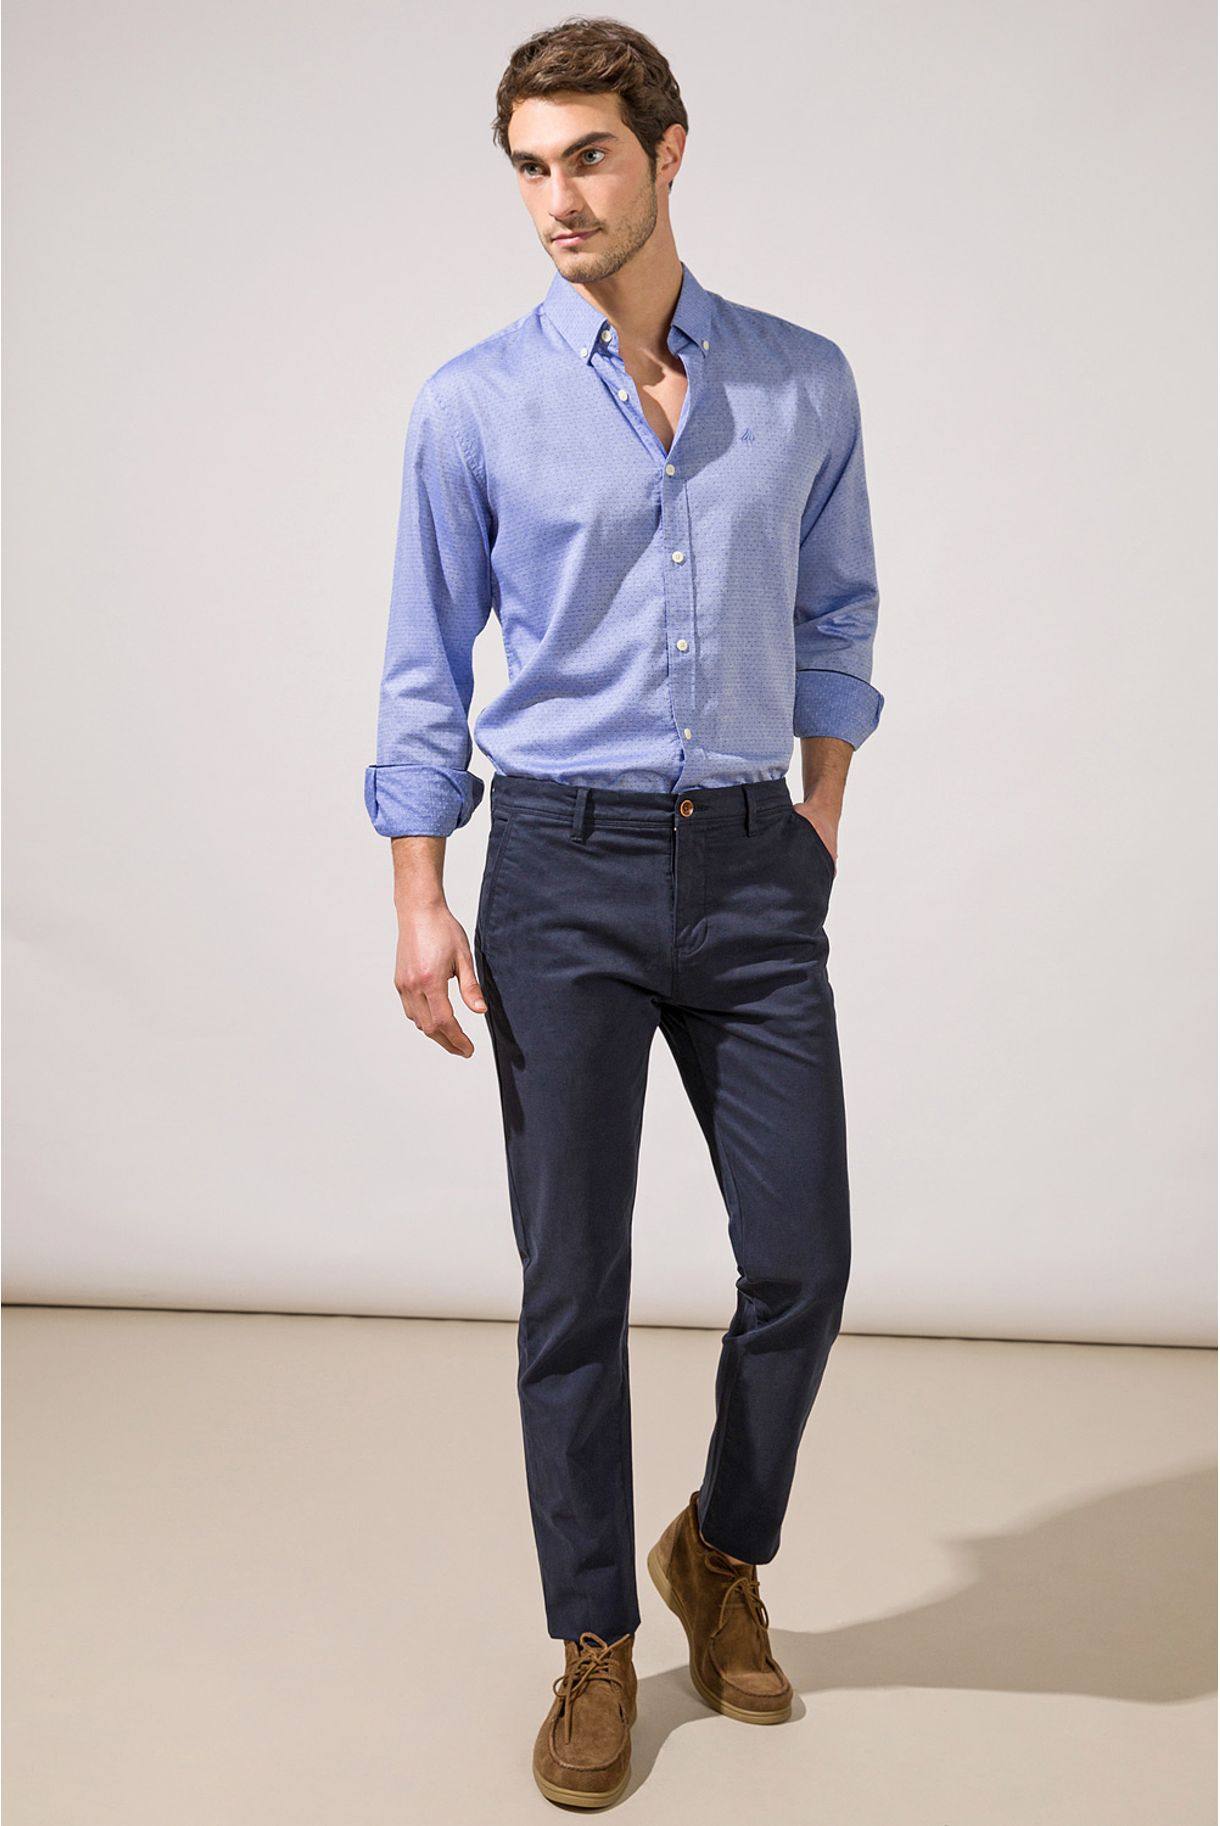 CHINO TROUSERS WITH REGULAR FIT CUT